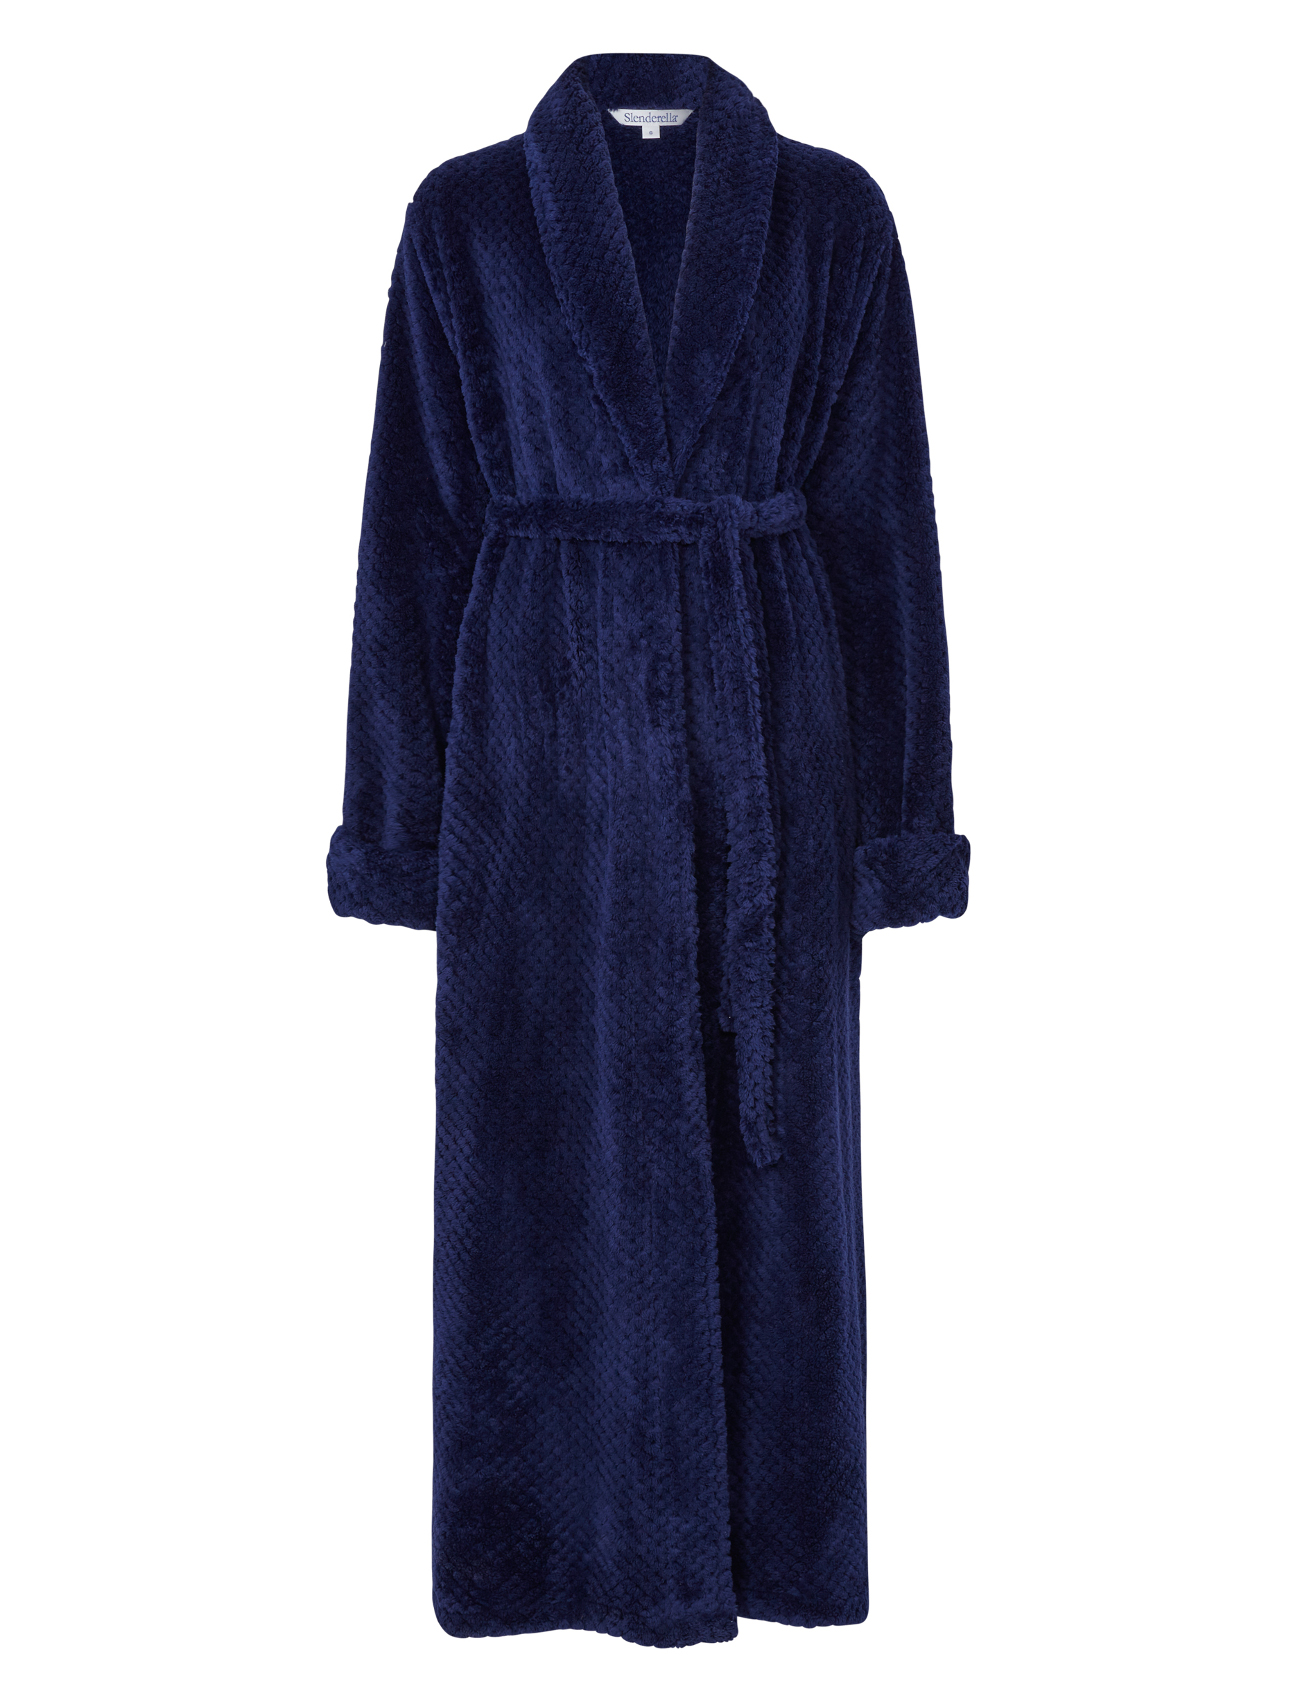 We specialise in High Quality Bridal Robes as well as Personalised Embroidered Luxury Nightwear.